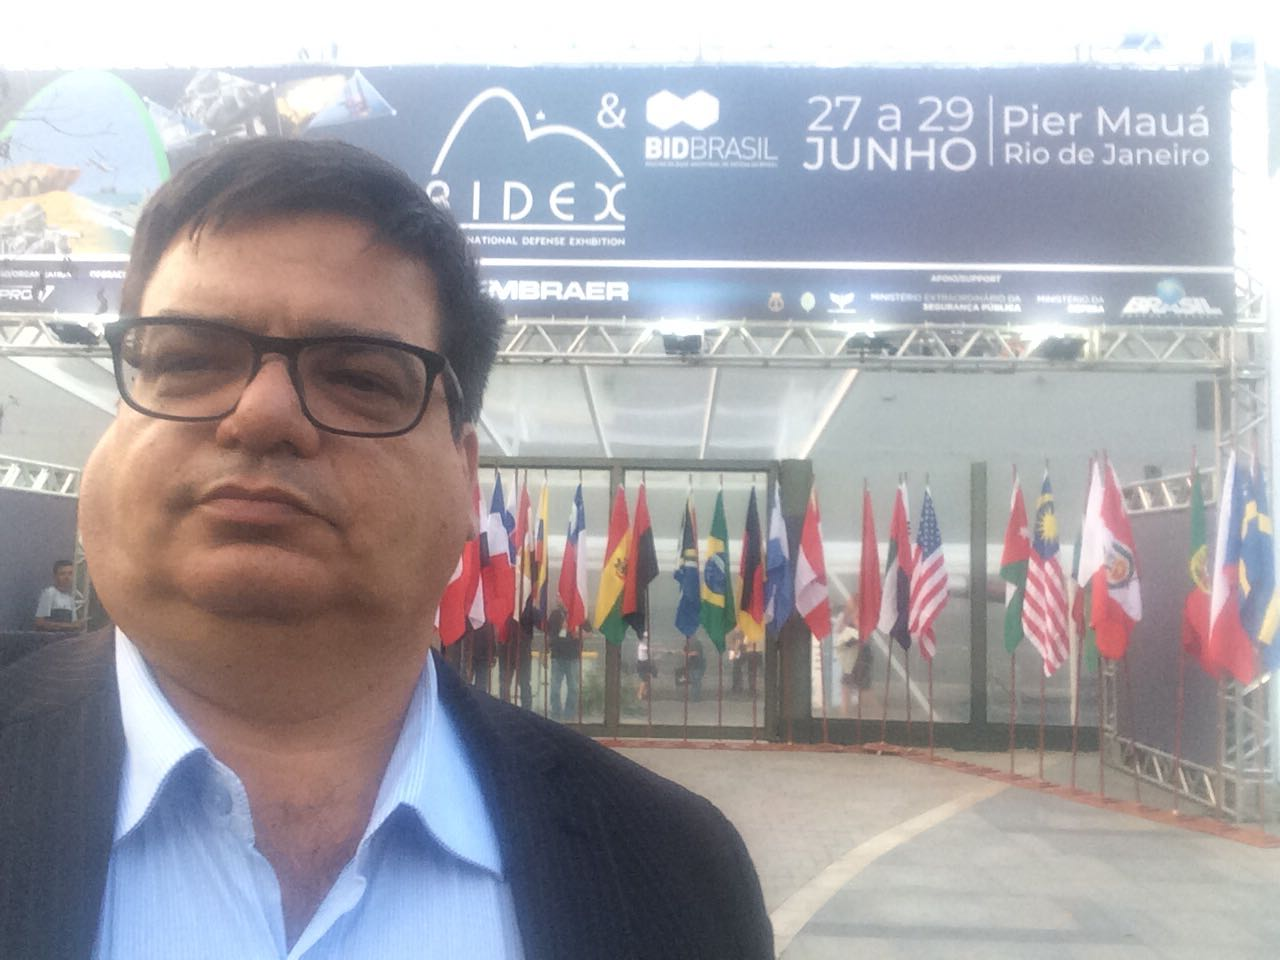 Rio International Defence Exposition – RIDEX